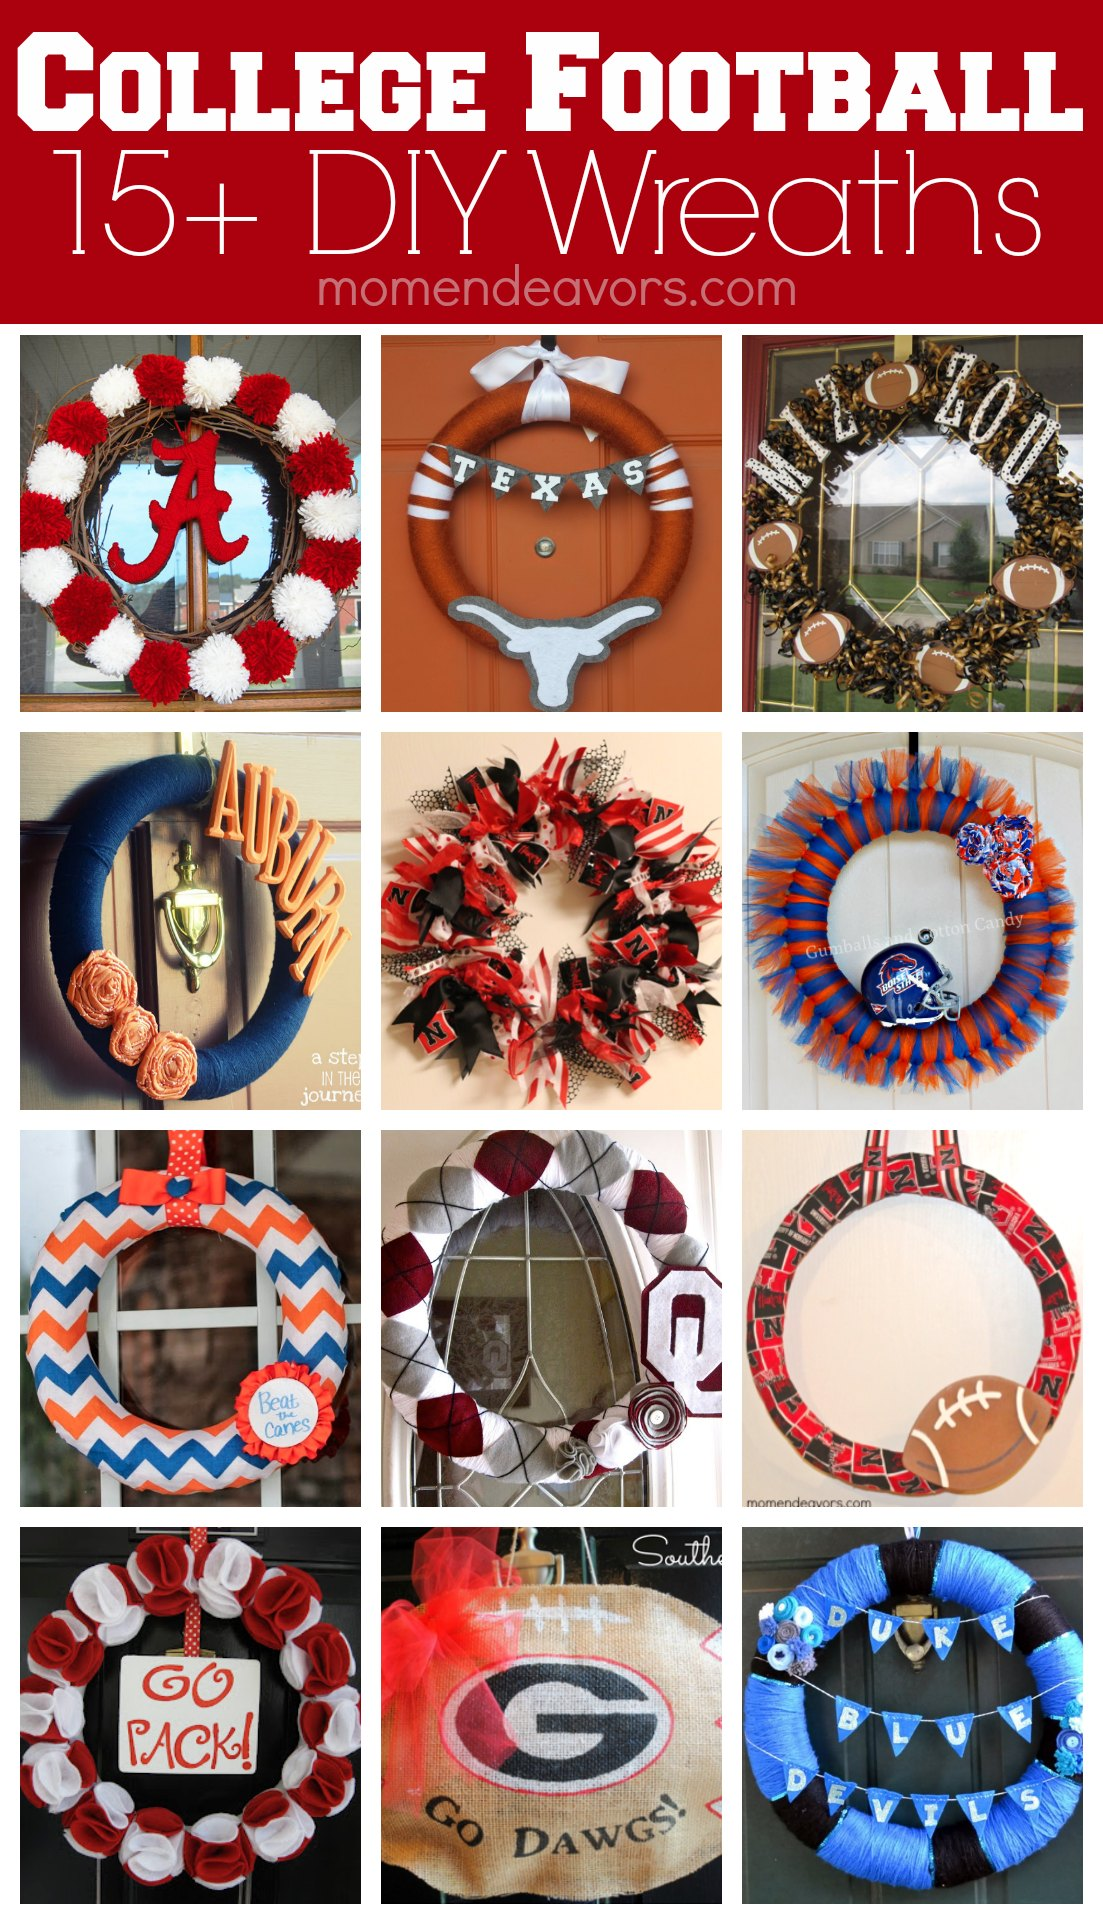 15 Diy Football Team Spirit Wreaths College Football Tailgate Link Party Mom Endeavors